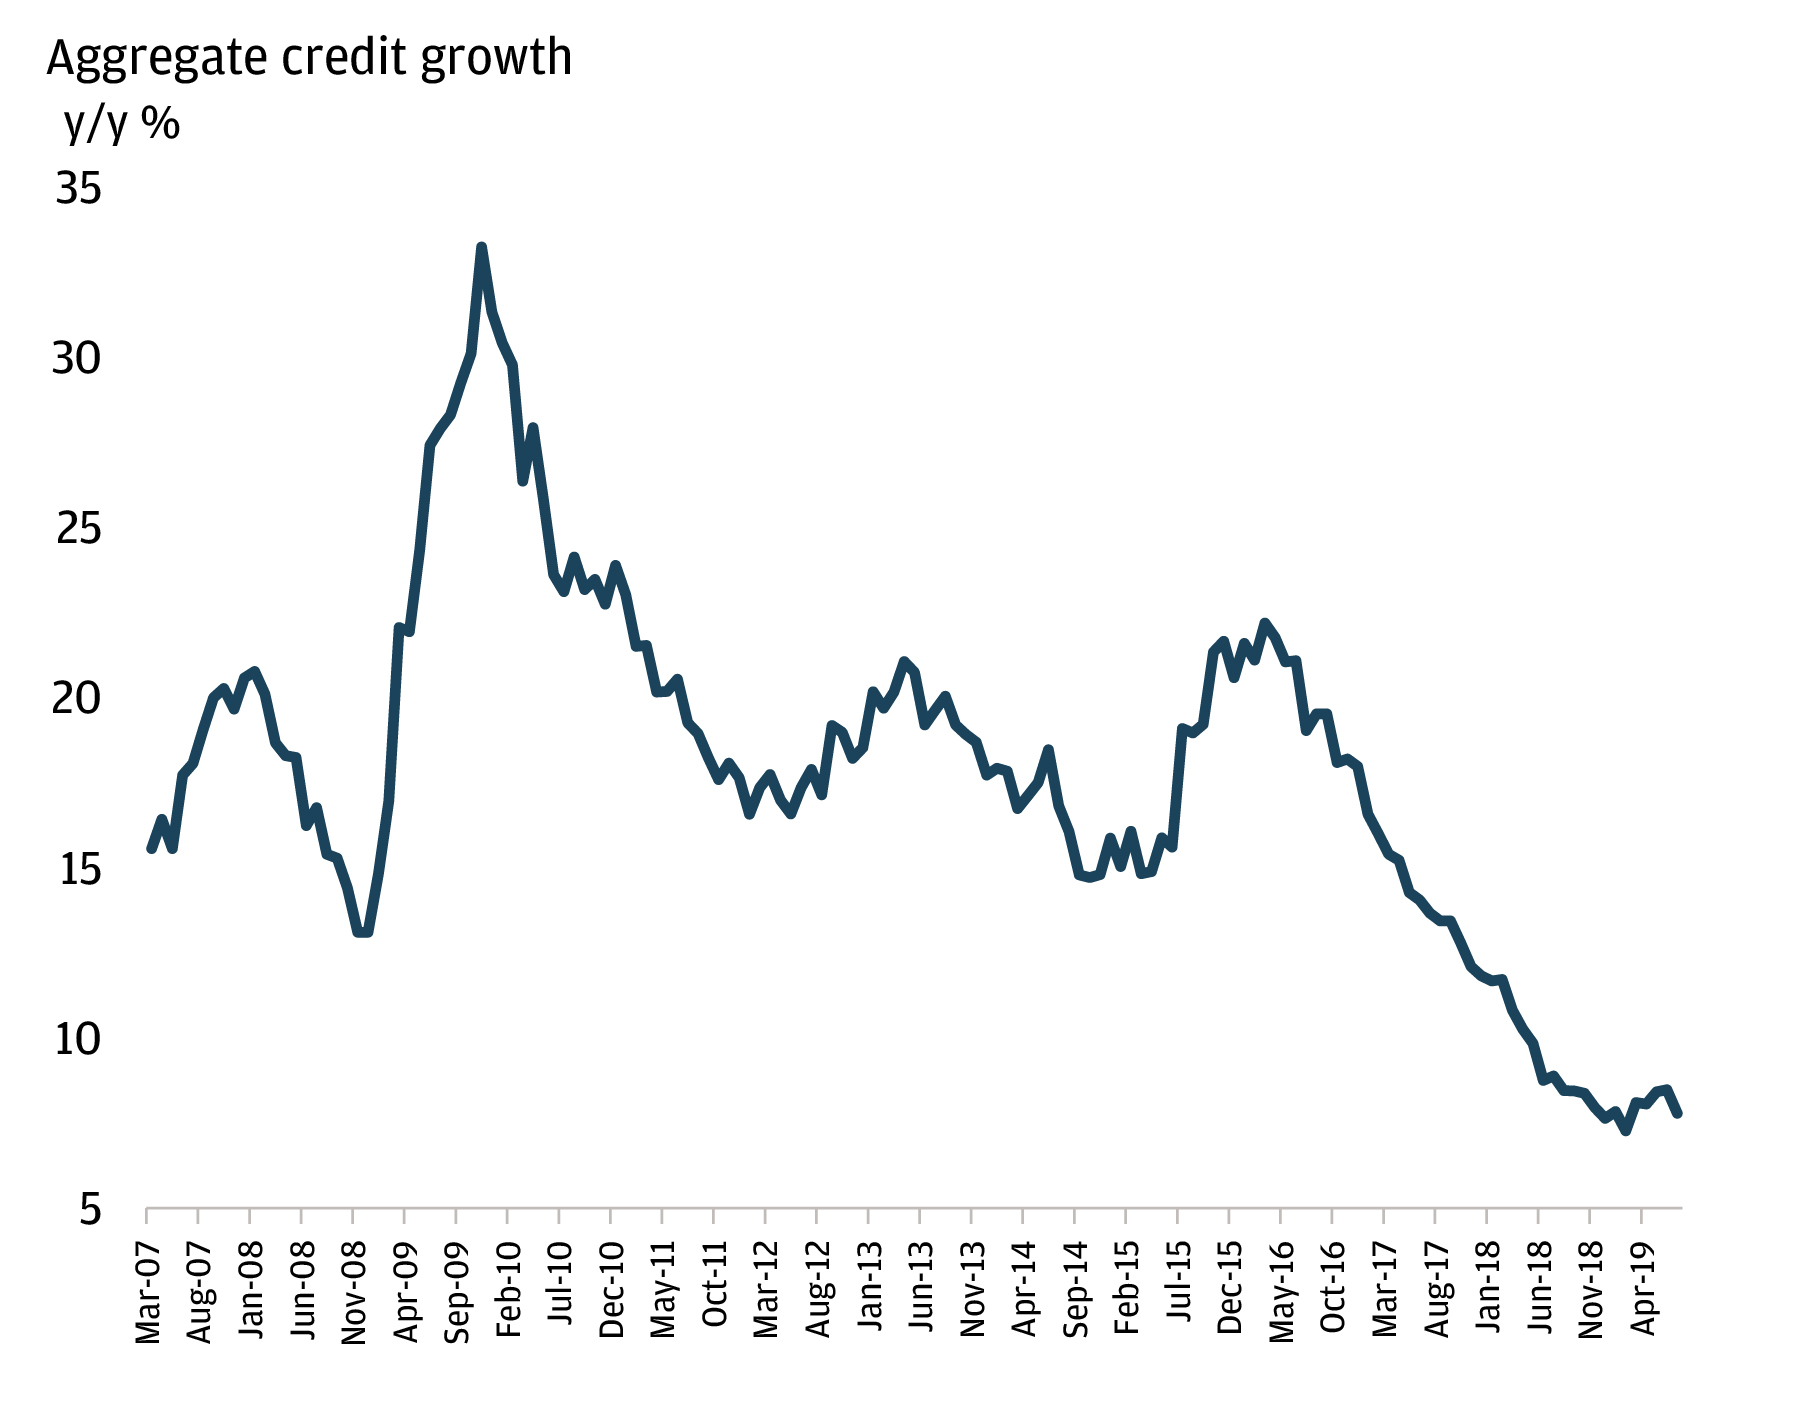 A line chart showing aggregate credit growth from March 2007 to April 2019.